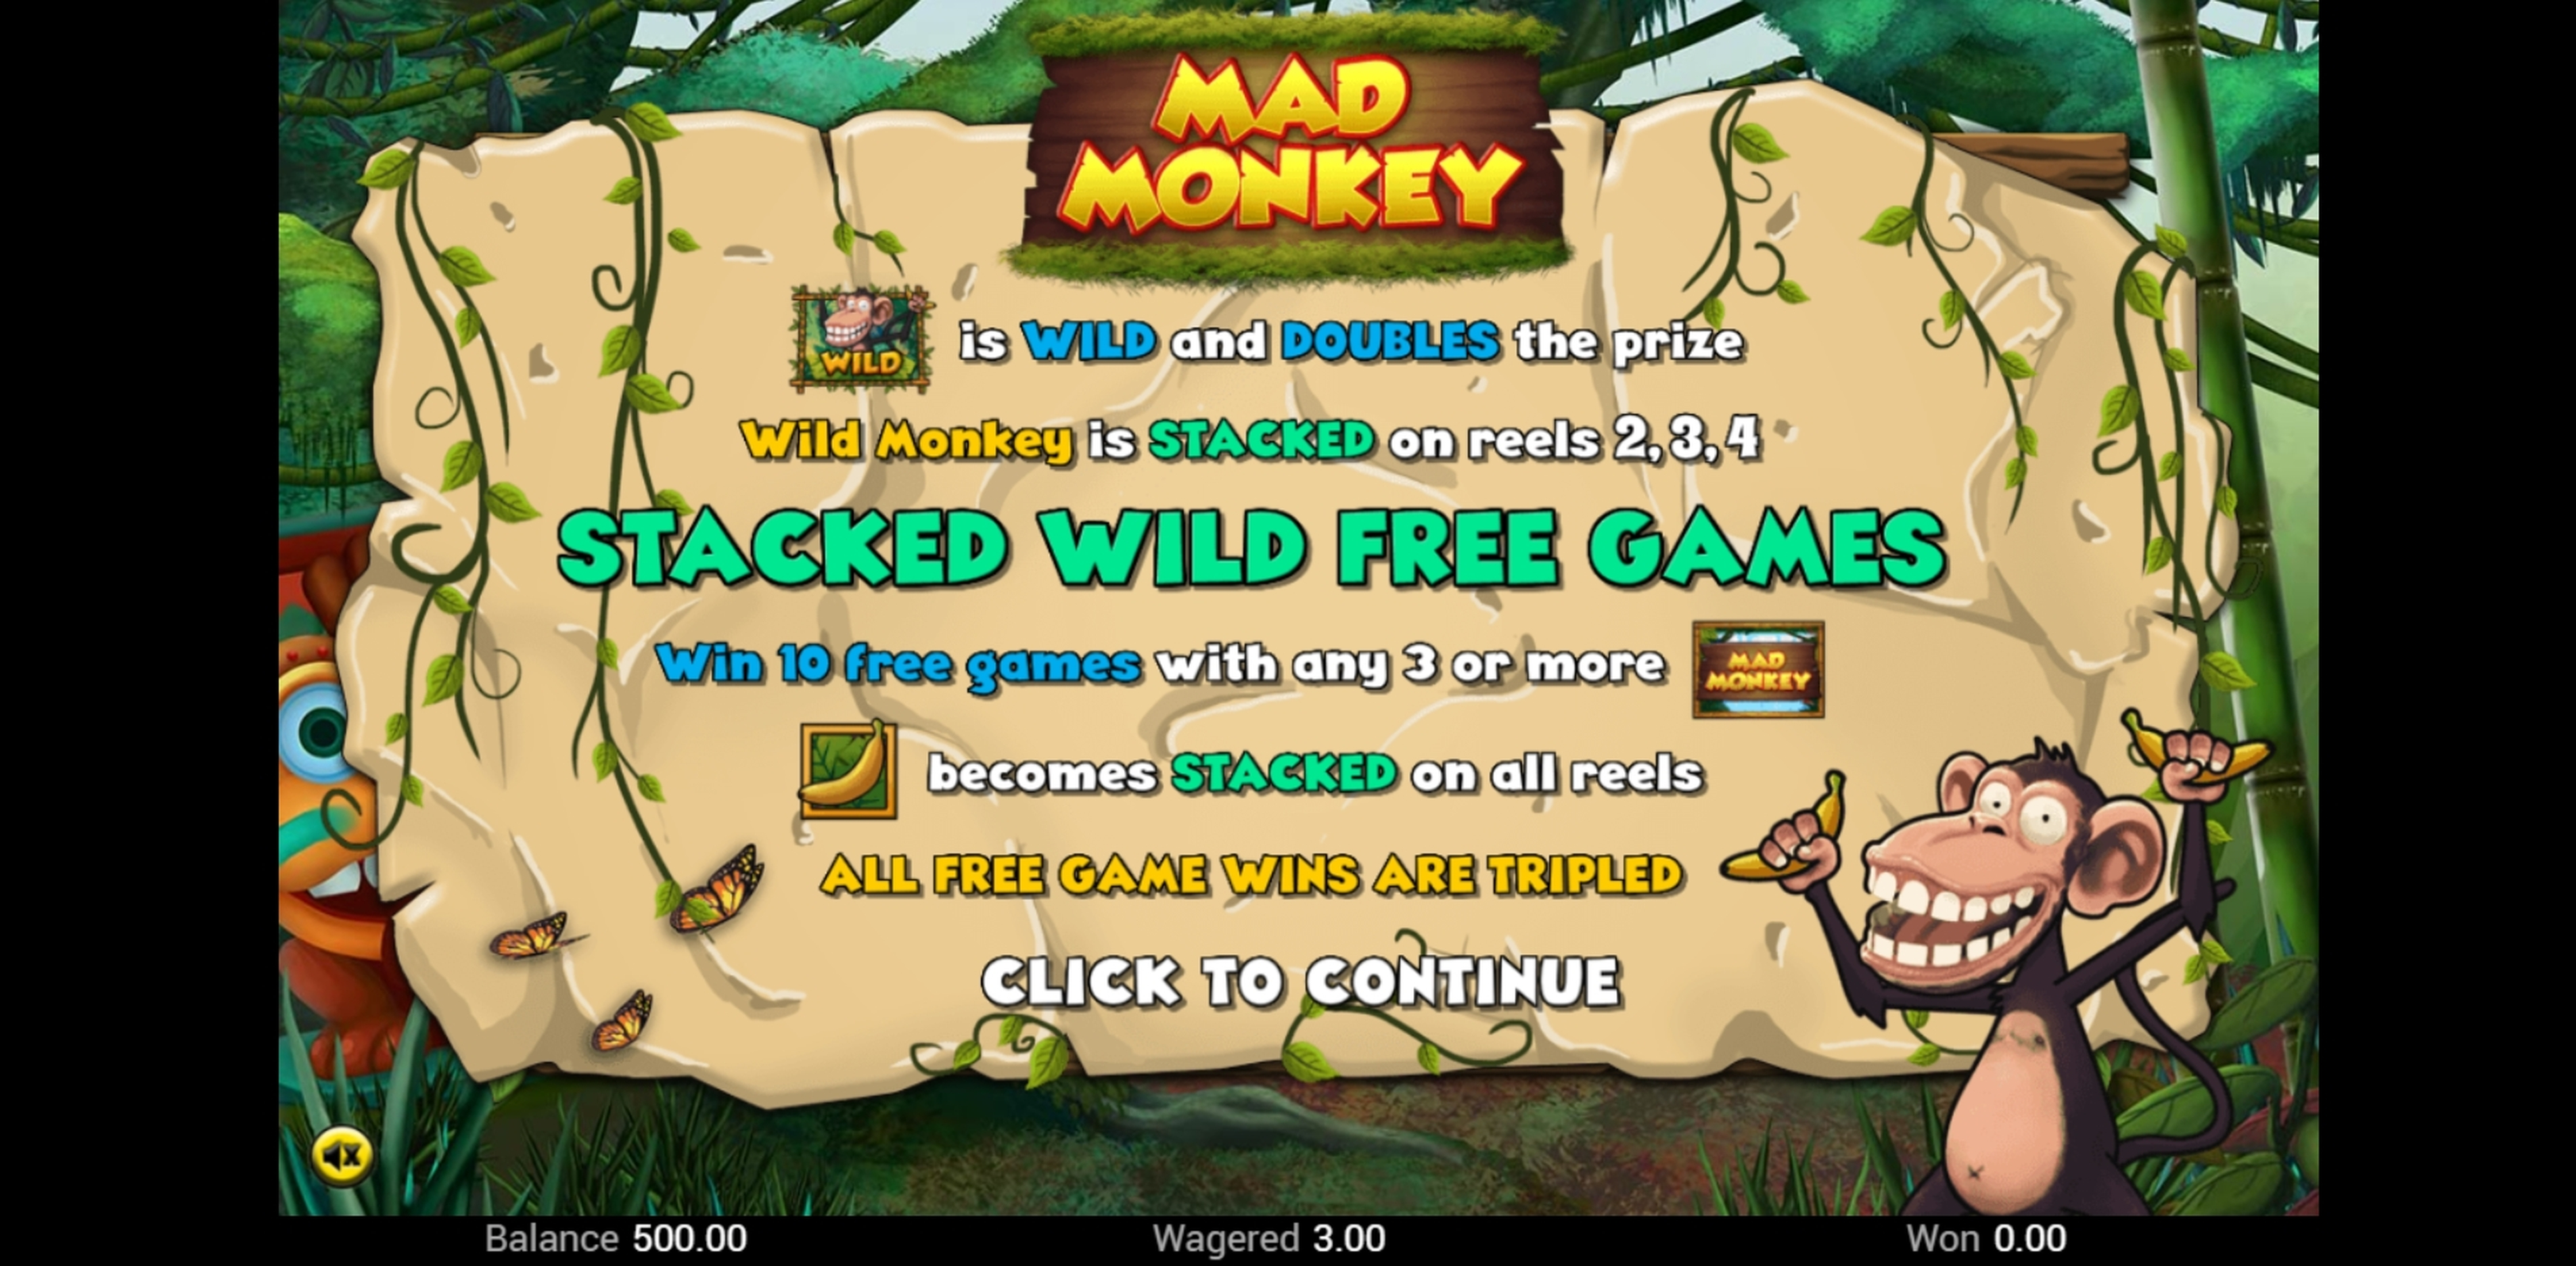 Play Mad Monkey Free Casino Slot Game by Top Trend Gaming